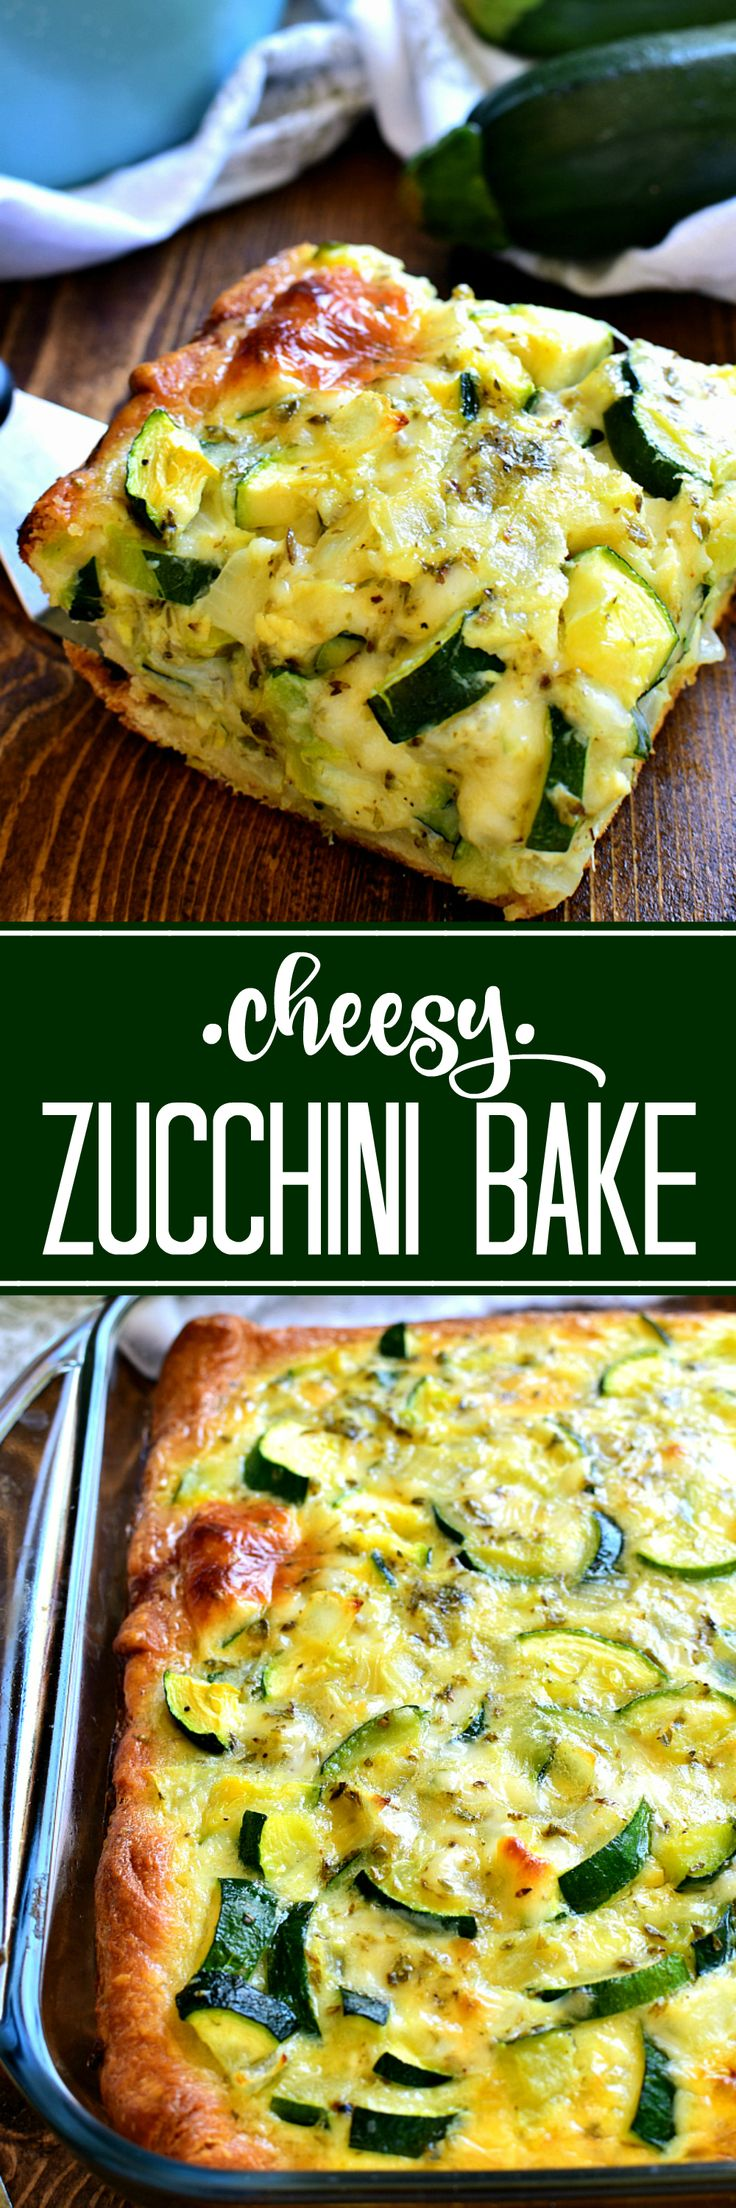 This Cheesy Zucchini Bake Is One Of My Favorite Ways To Use Zucchini!  Delicious For